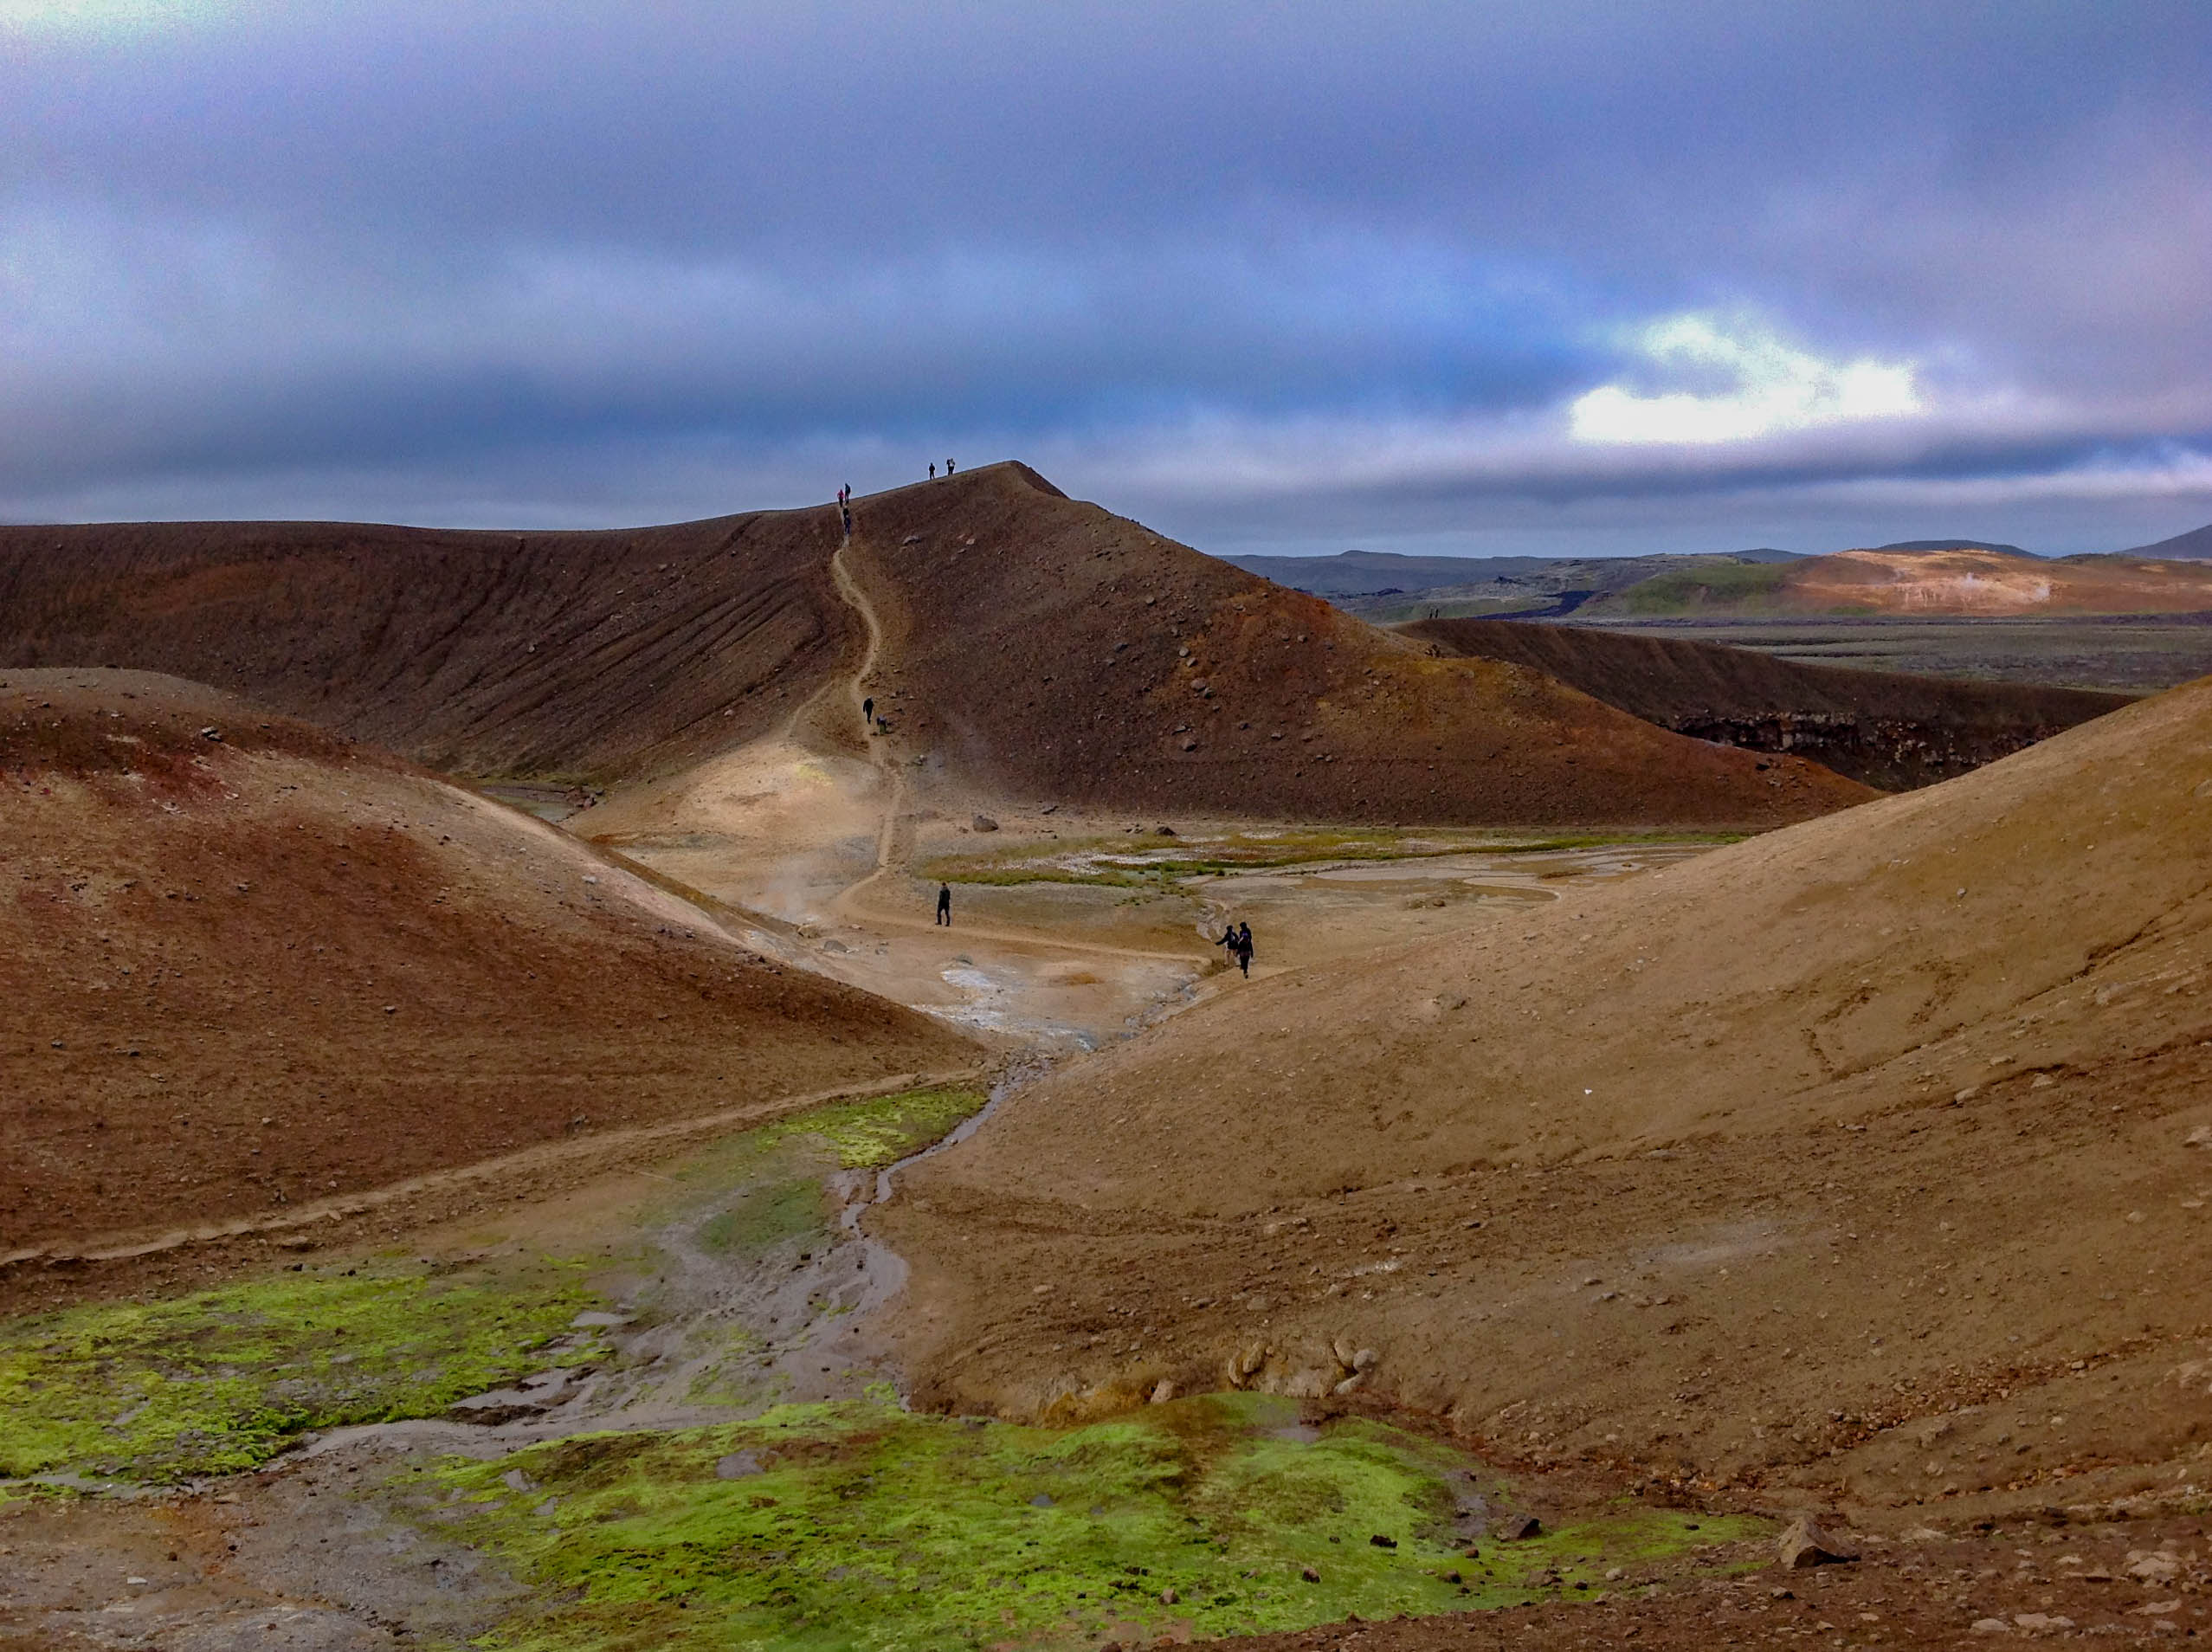 Hiking on the Edge of the Krafla Volcano in Myvatn, Iceland